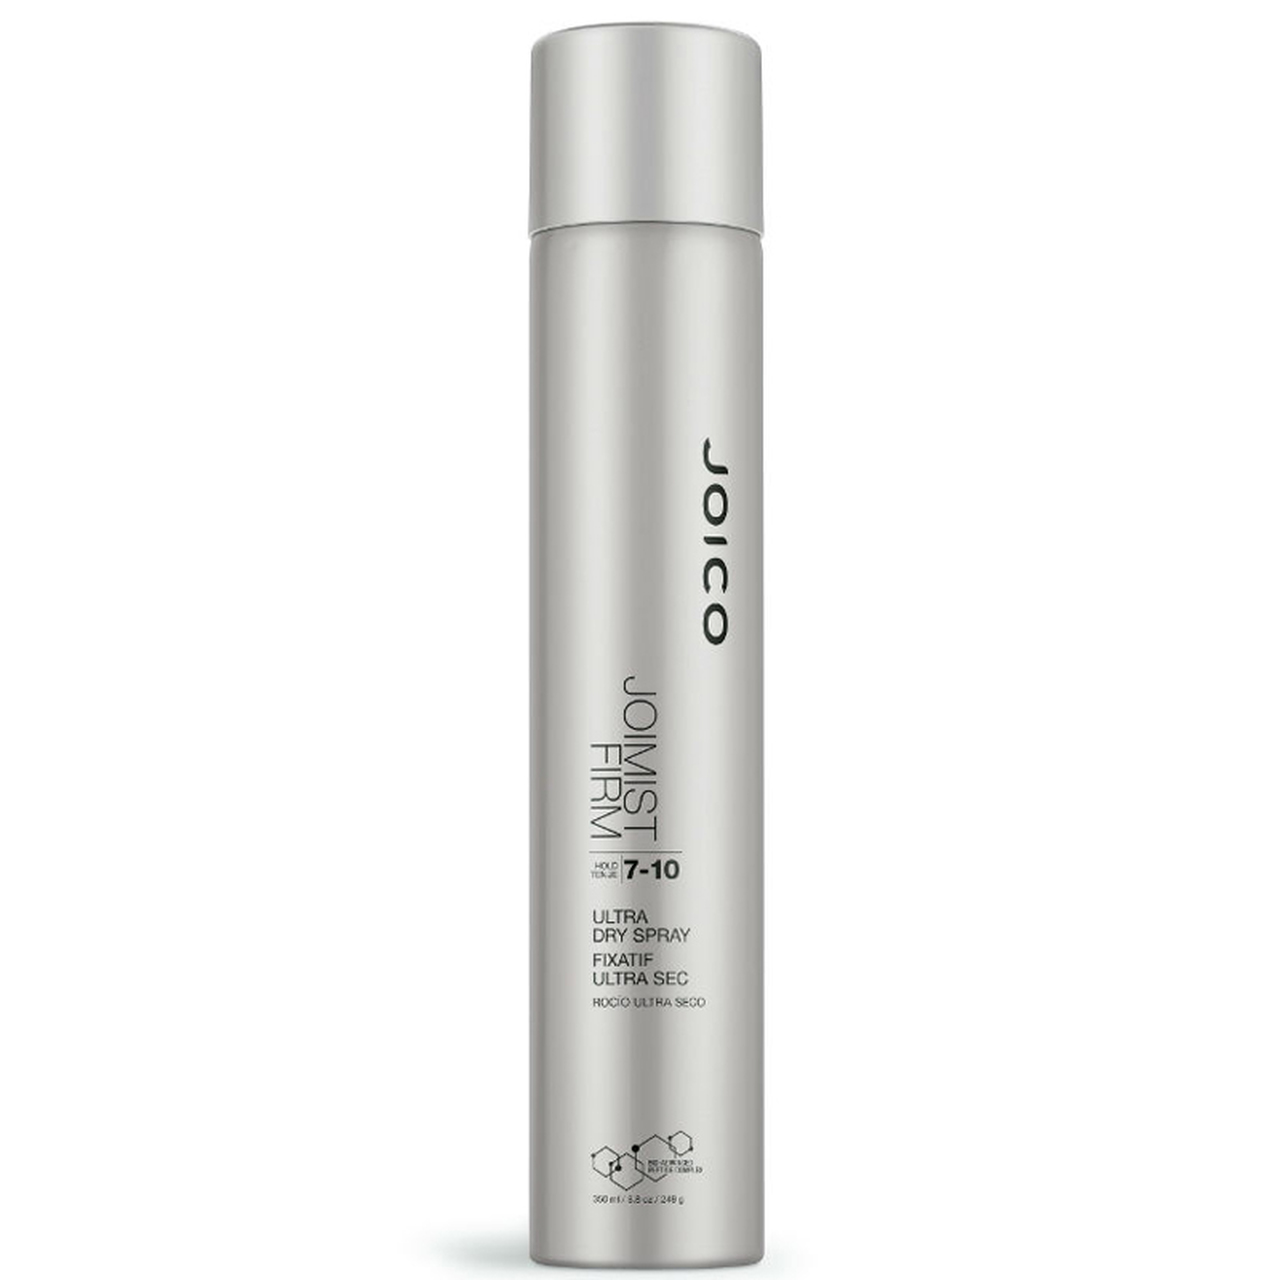 JOICO 7-10 JoiMist Firm Finishing Spray